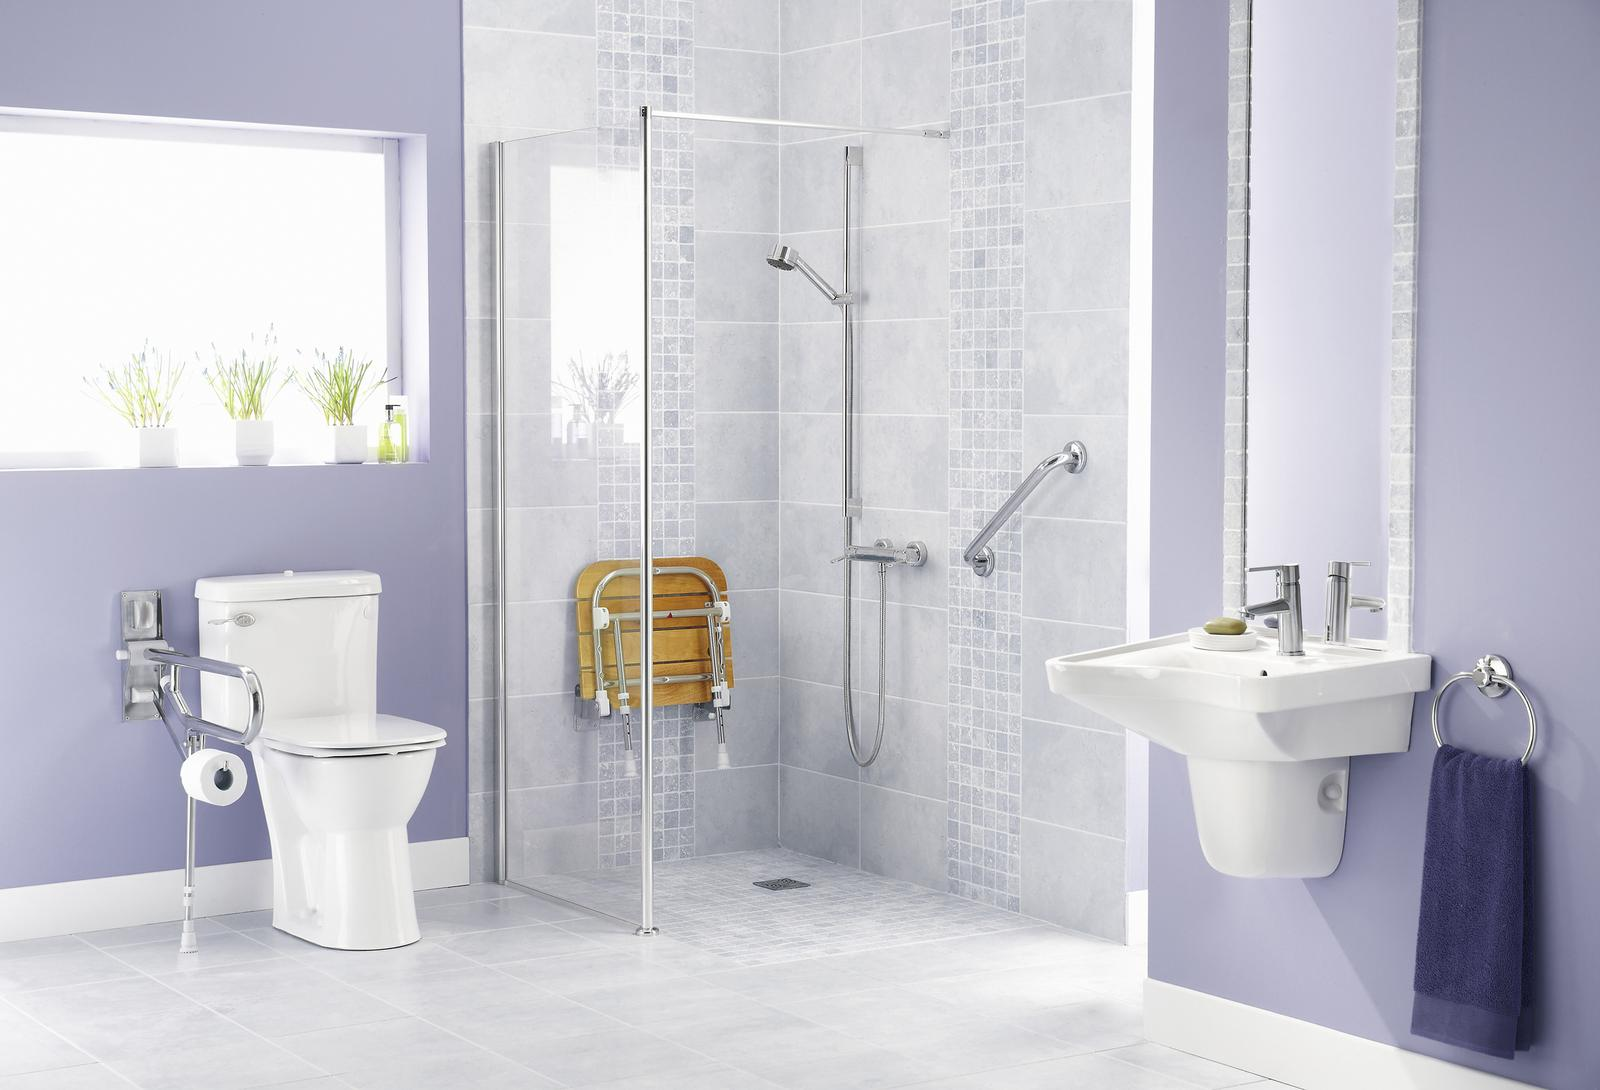 Bathroom Safety Products at Wellness Medical Equipment and Supplies